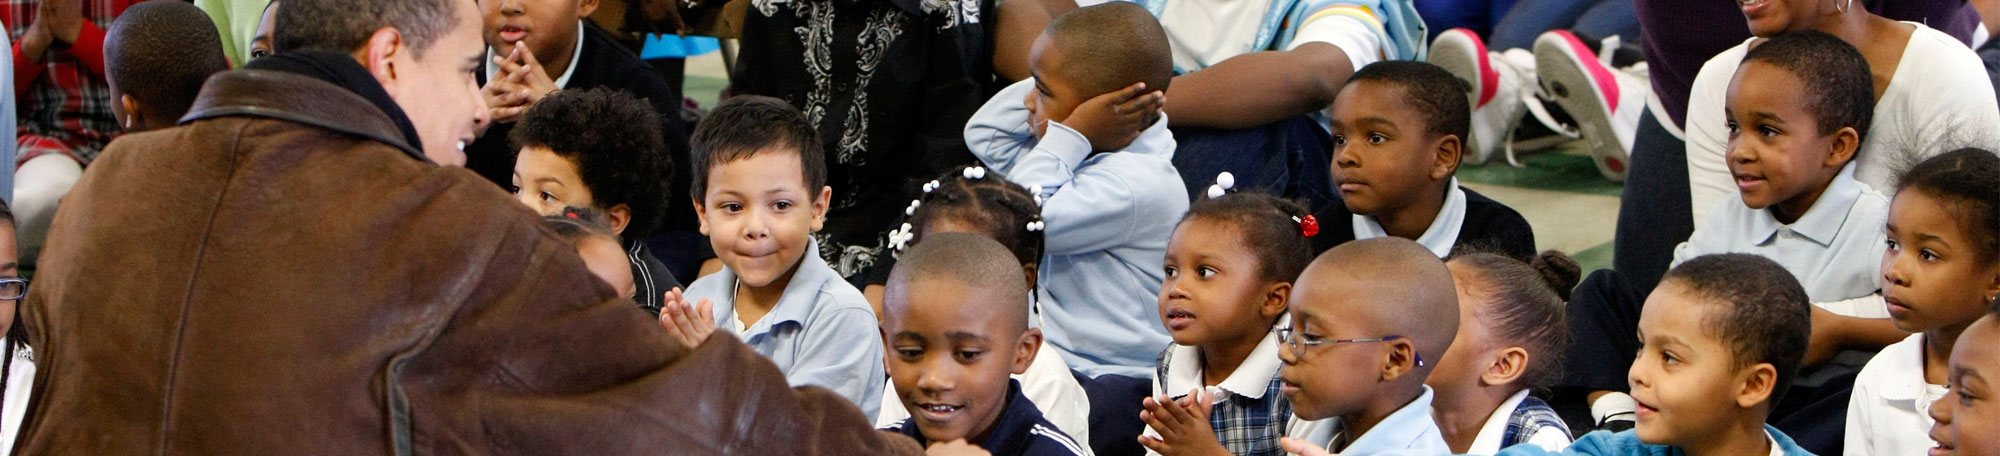 President Obama engages with young local children